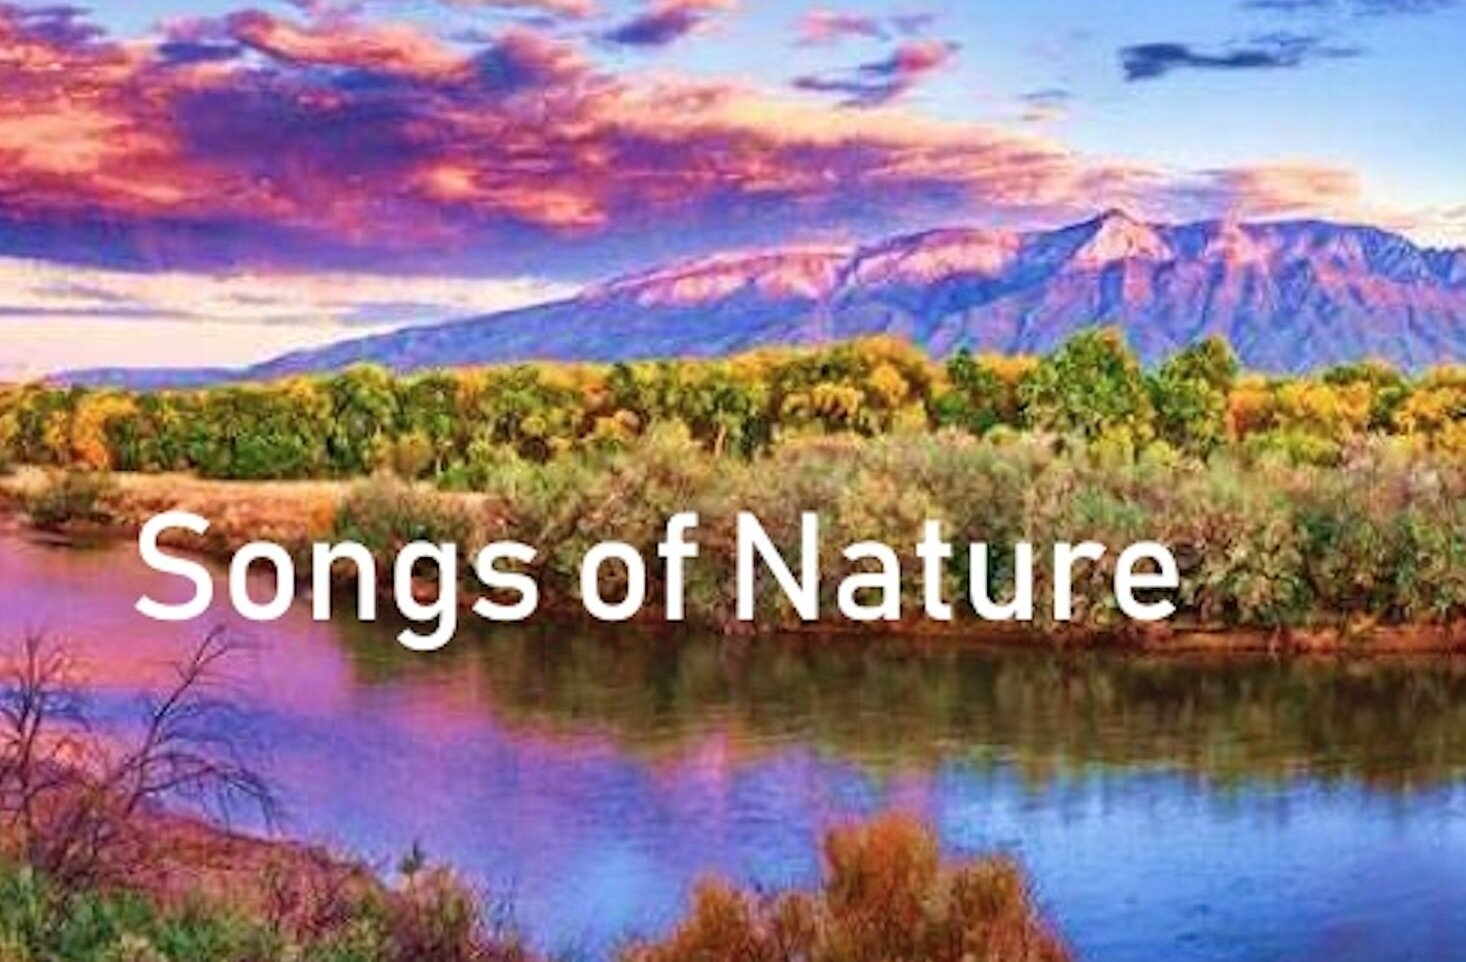 Songs of Nature - Saturday, April 25, 4:00 PM, Santa FeSunday, April 26, 4:00 PM, Los Alamos